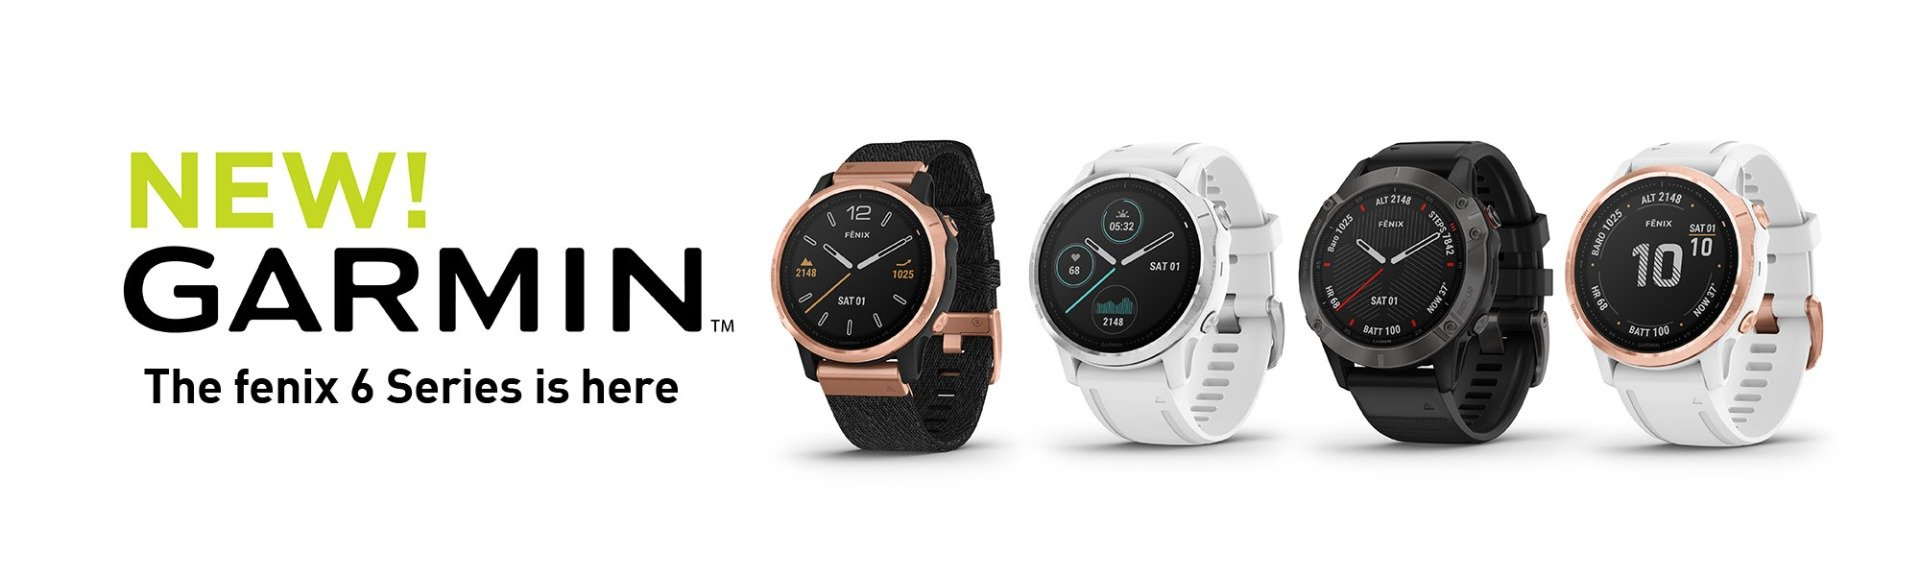 Garmin Fenix 6 Series